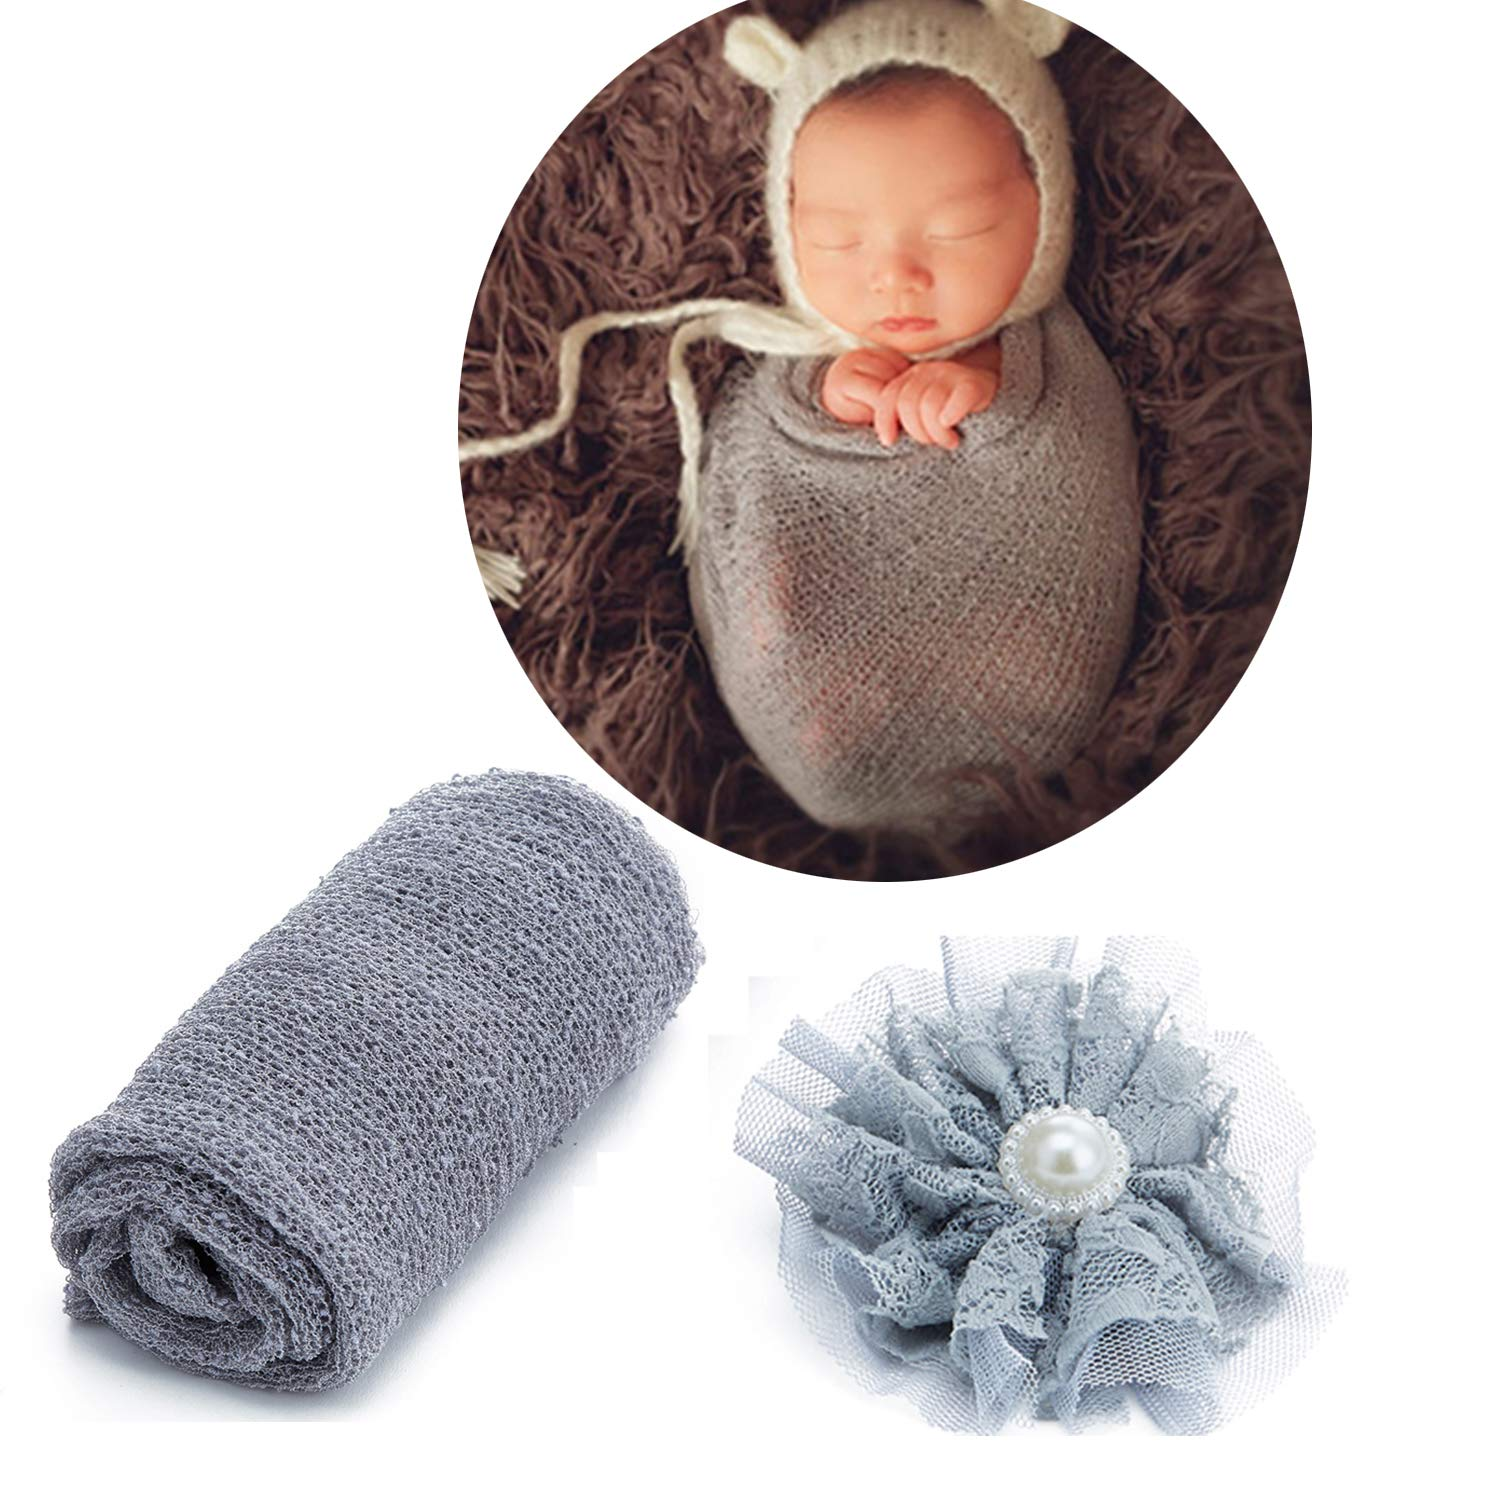 Stretch-Strickdecke lange Ripple Wraps kaffeefarben Baby-Stirnband DIY Rehomy Baby-Foto-Requisiten